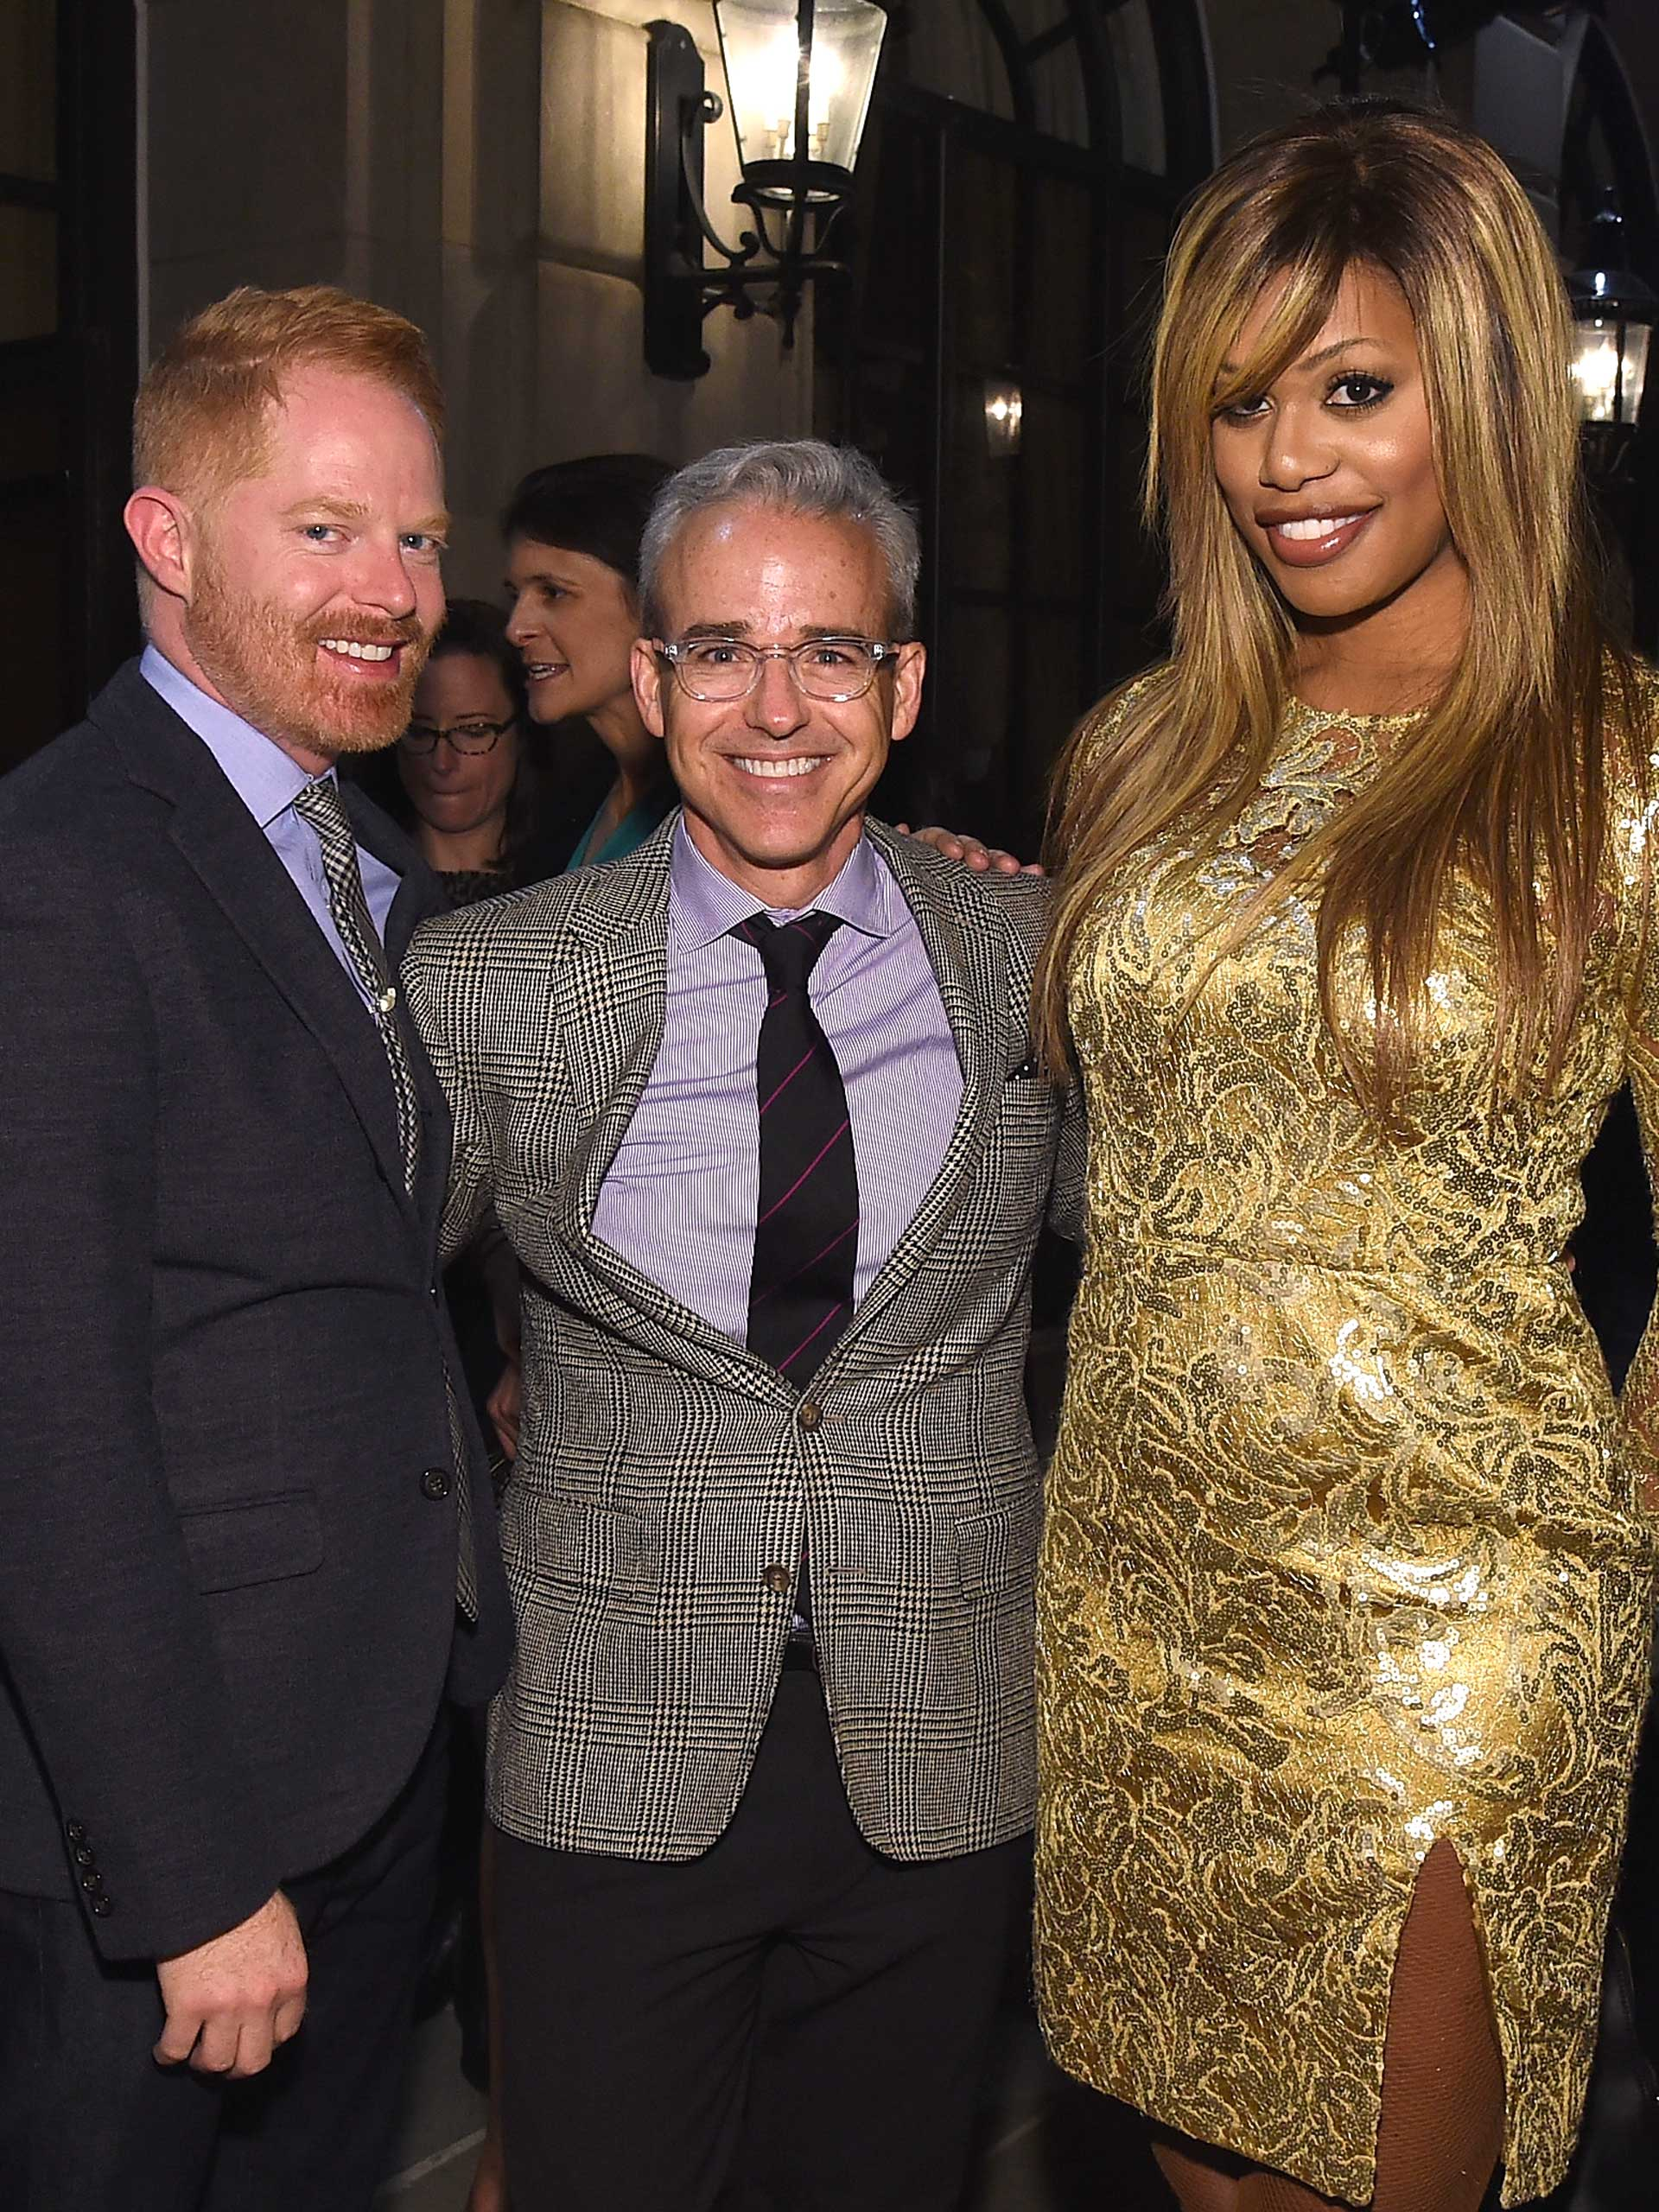 Jesse Tyler Ferguson, Laverne Cox and Editorial Director of PEOPLE Magazine Jess Cagle